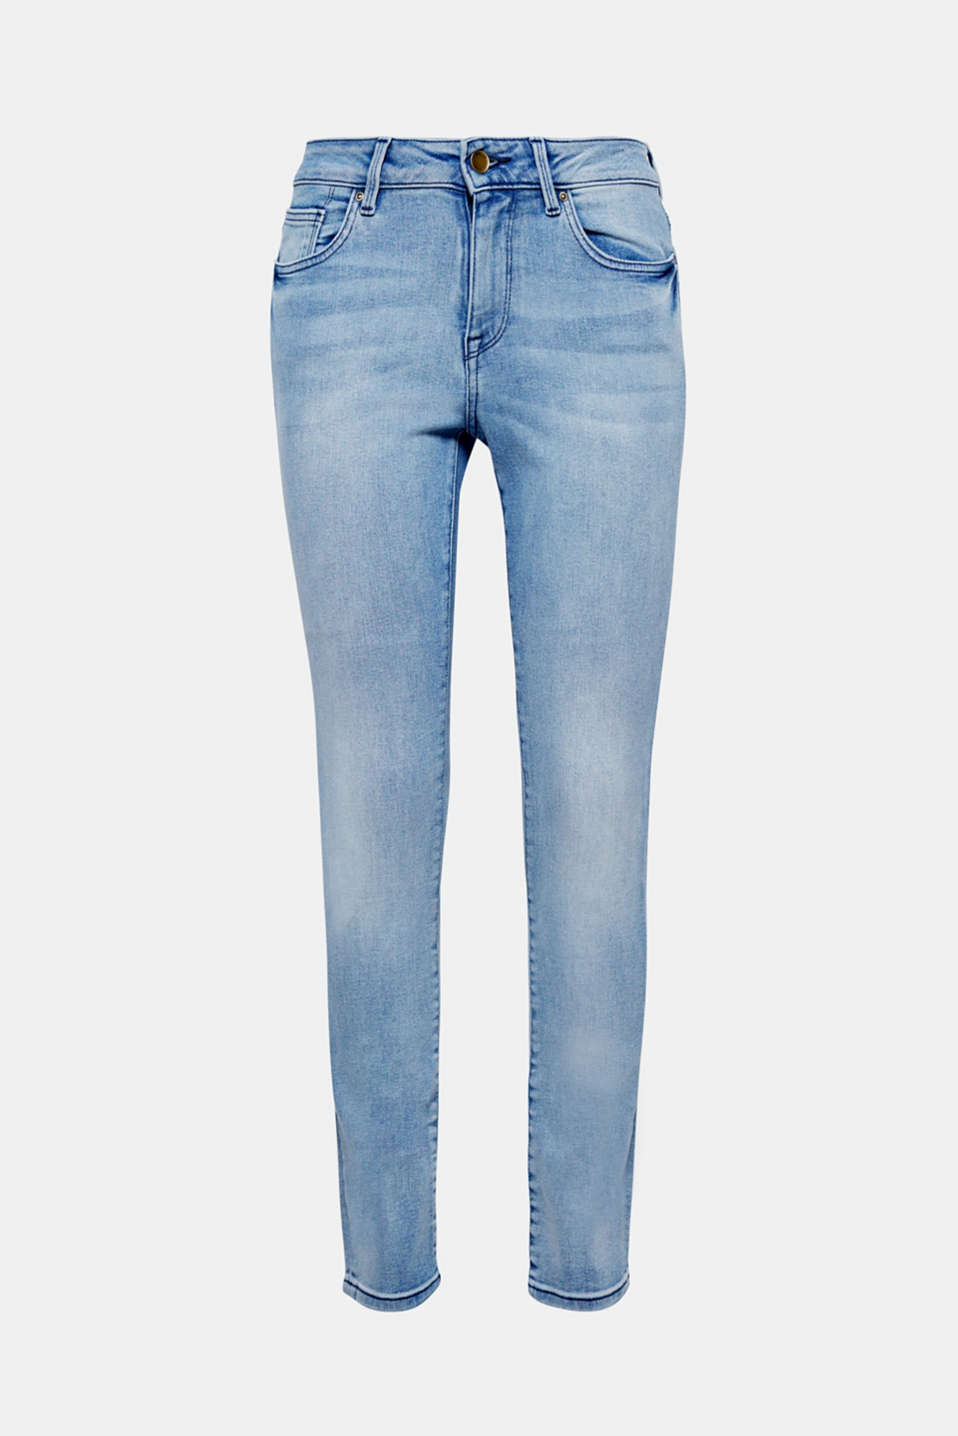 Supersoft jogg denim and a trendy wash make these jeans a favourite piece.